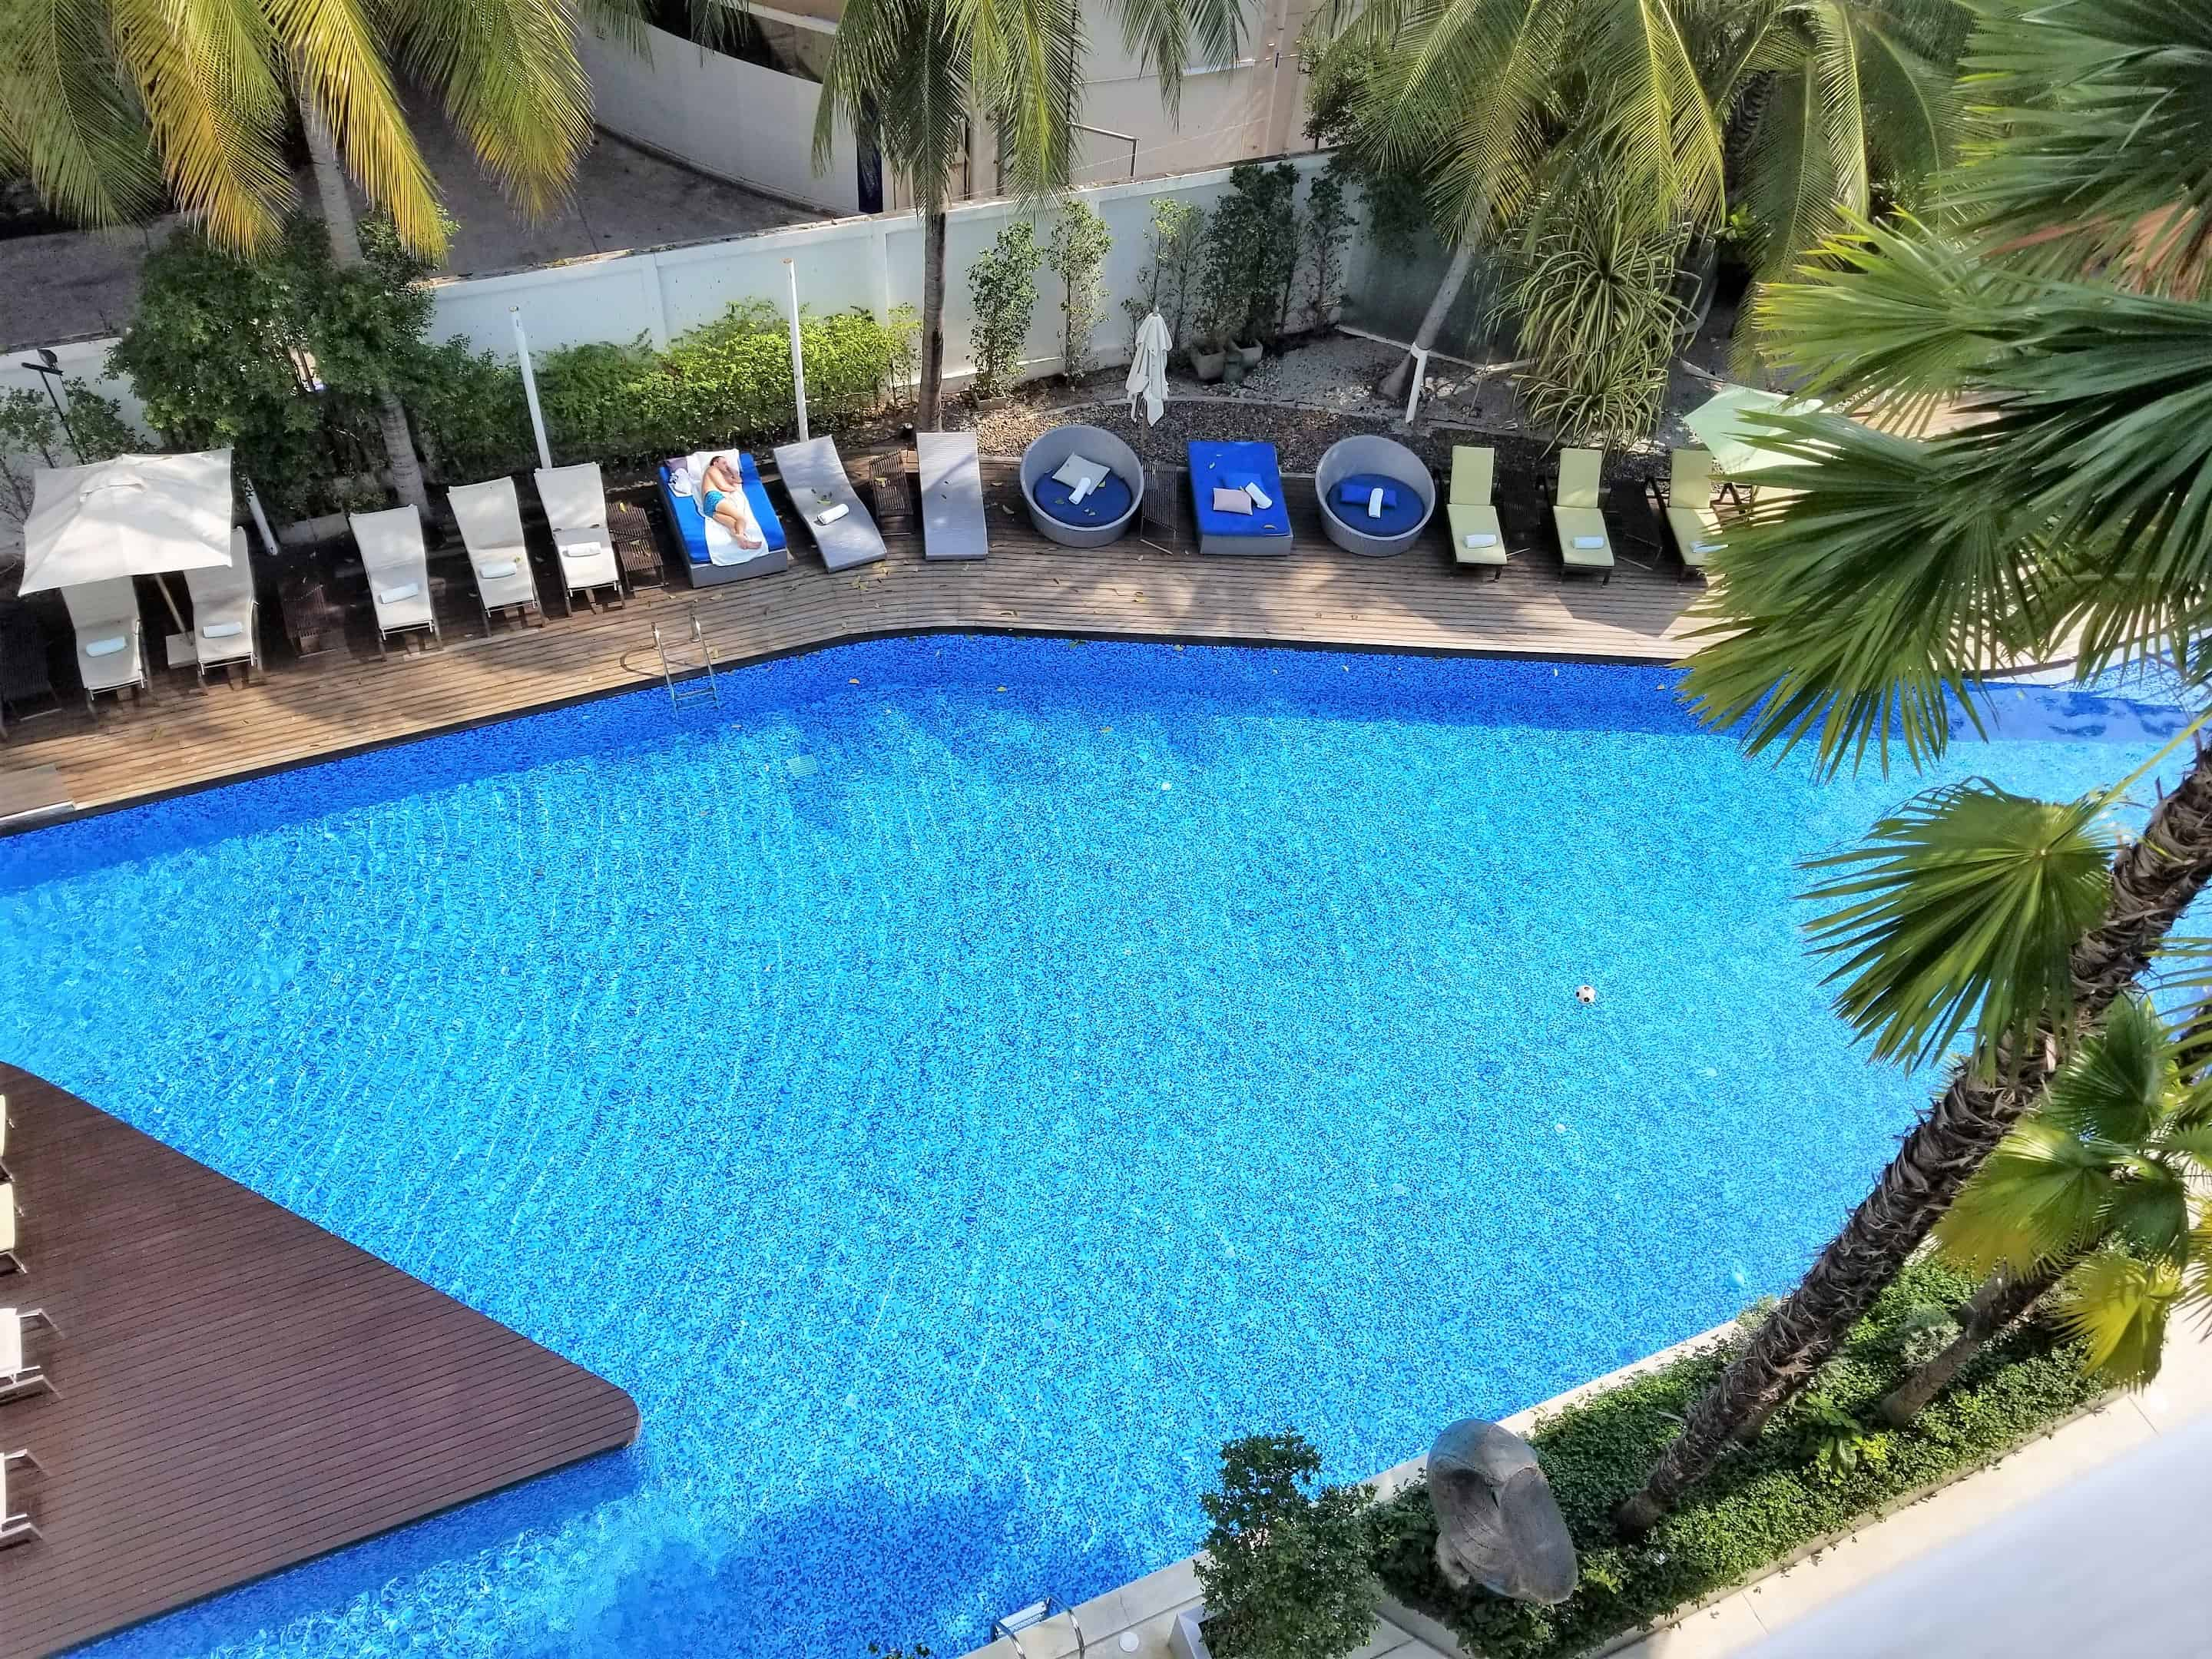 image-of-hotel-baraquda-swimming-pool